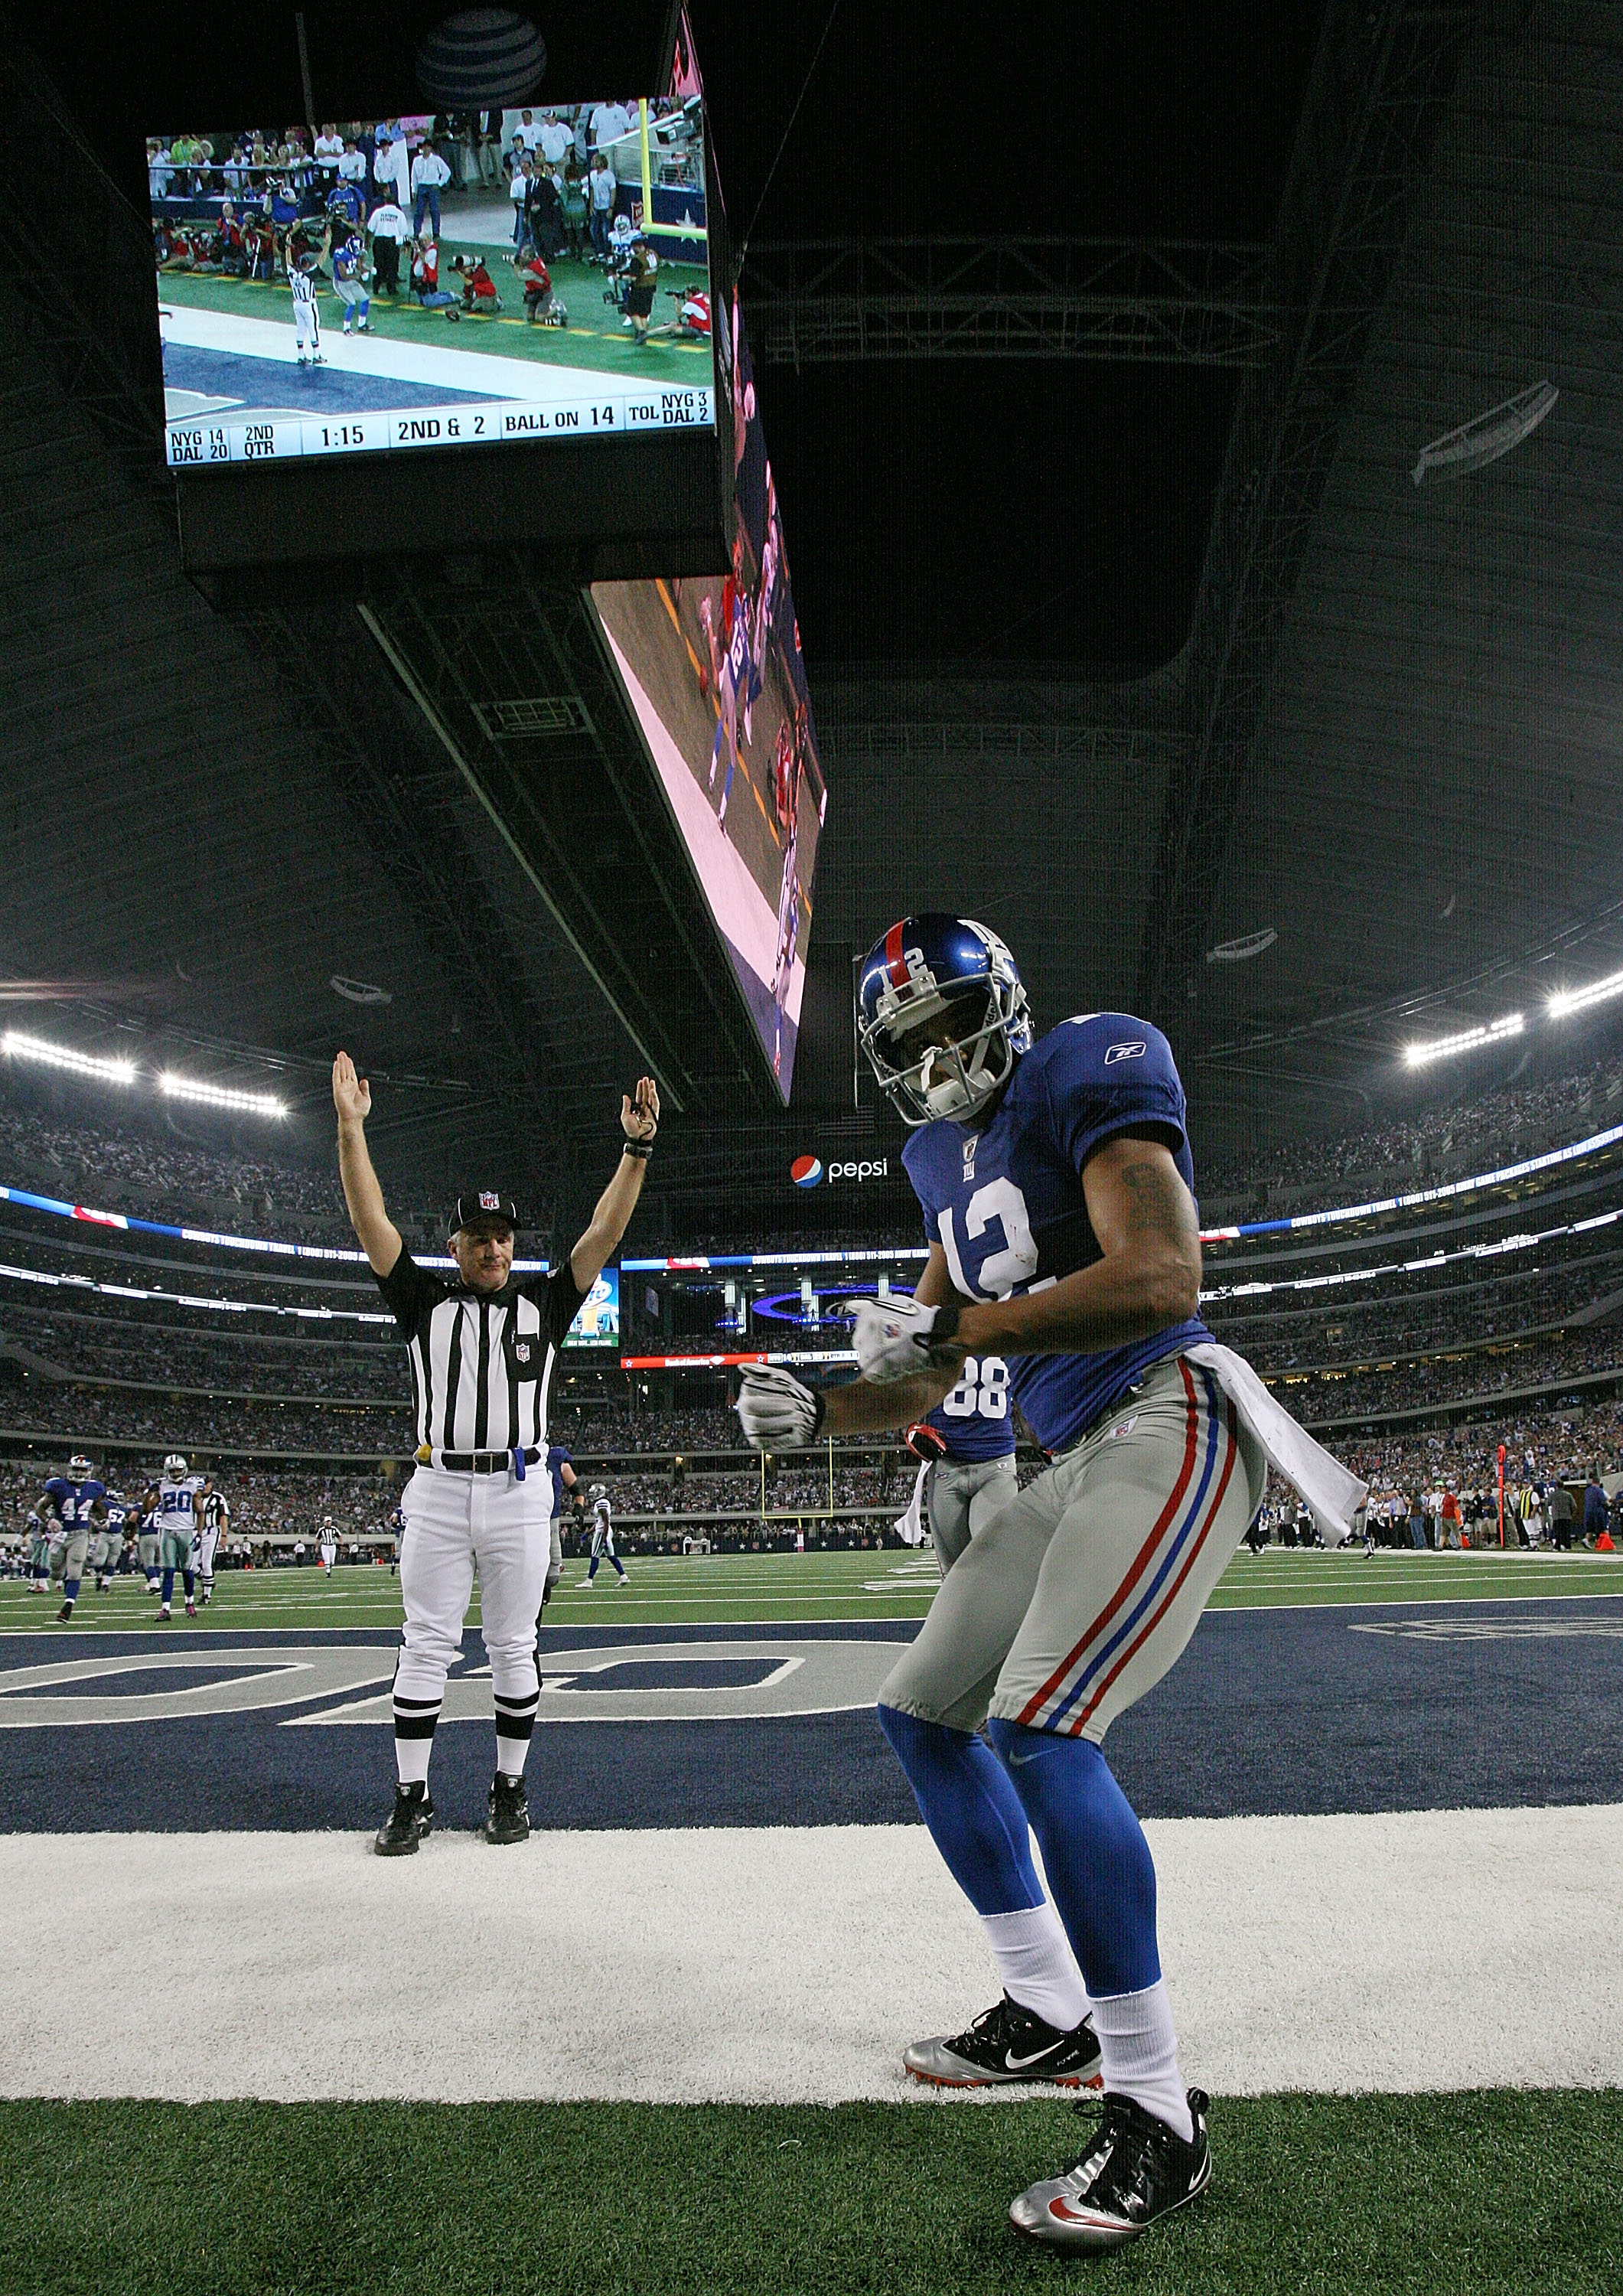 ARLINGTON, TX - OCTOBER 25:  Wide receiver Steve Smith #12 of the New York Giants celebrates a touchdown against the Dallas Cowboys in the second quarter at Cowboys Stadium on October 25, 2010 in Arlington, Texas.  (Photo by Ronald Martinez/Getty Images)